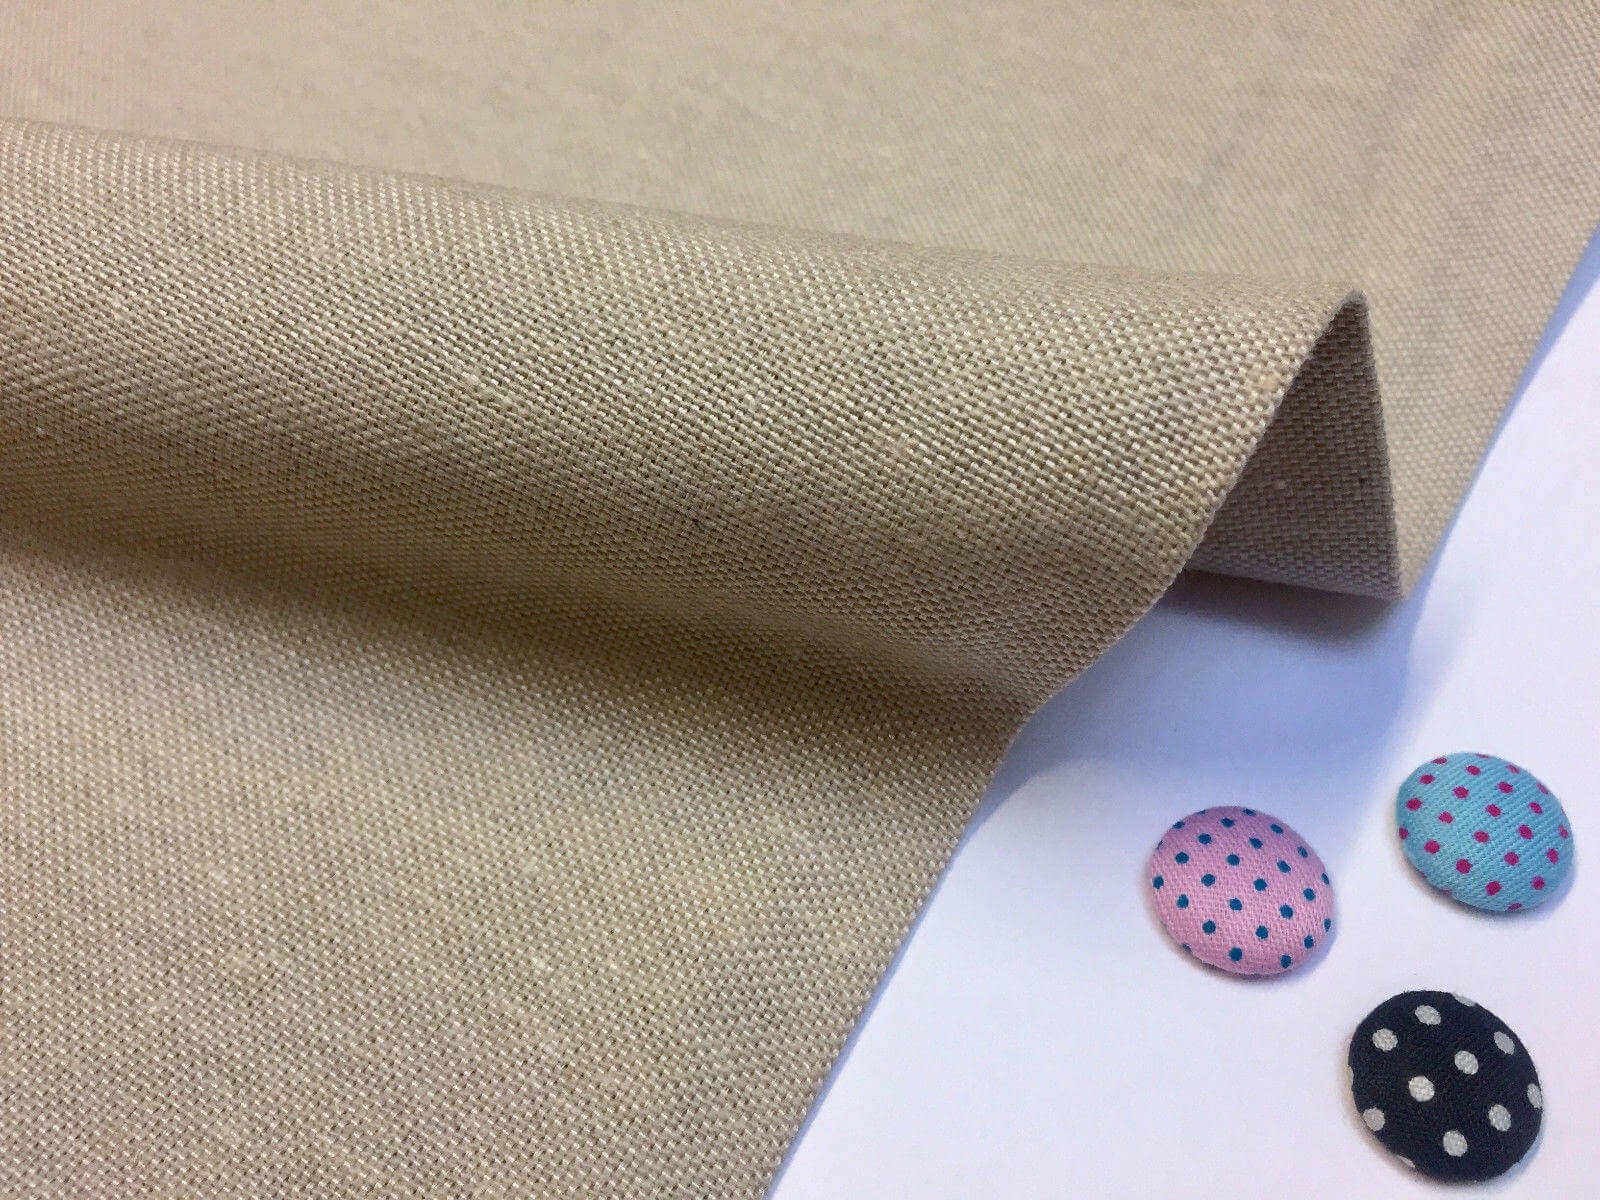 plain-ottoman-fabric-for-curtains-upholstery-cotton-canvas-material-140cm-wide-ecru-5aa45ea41.jpg